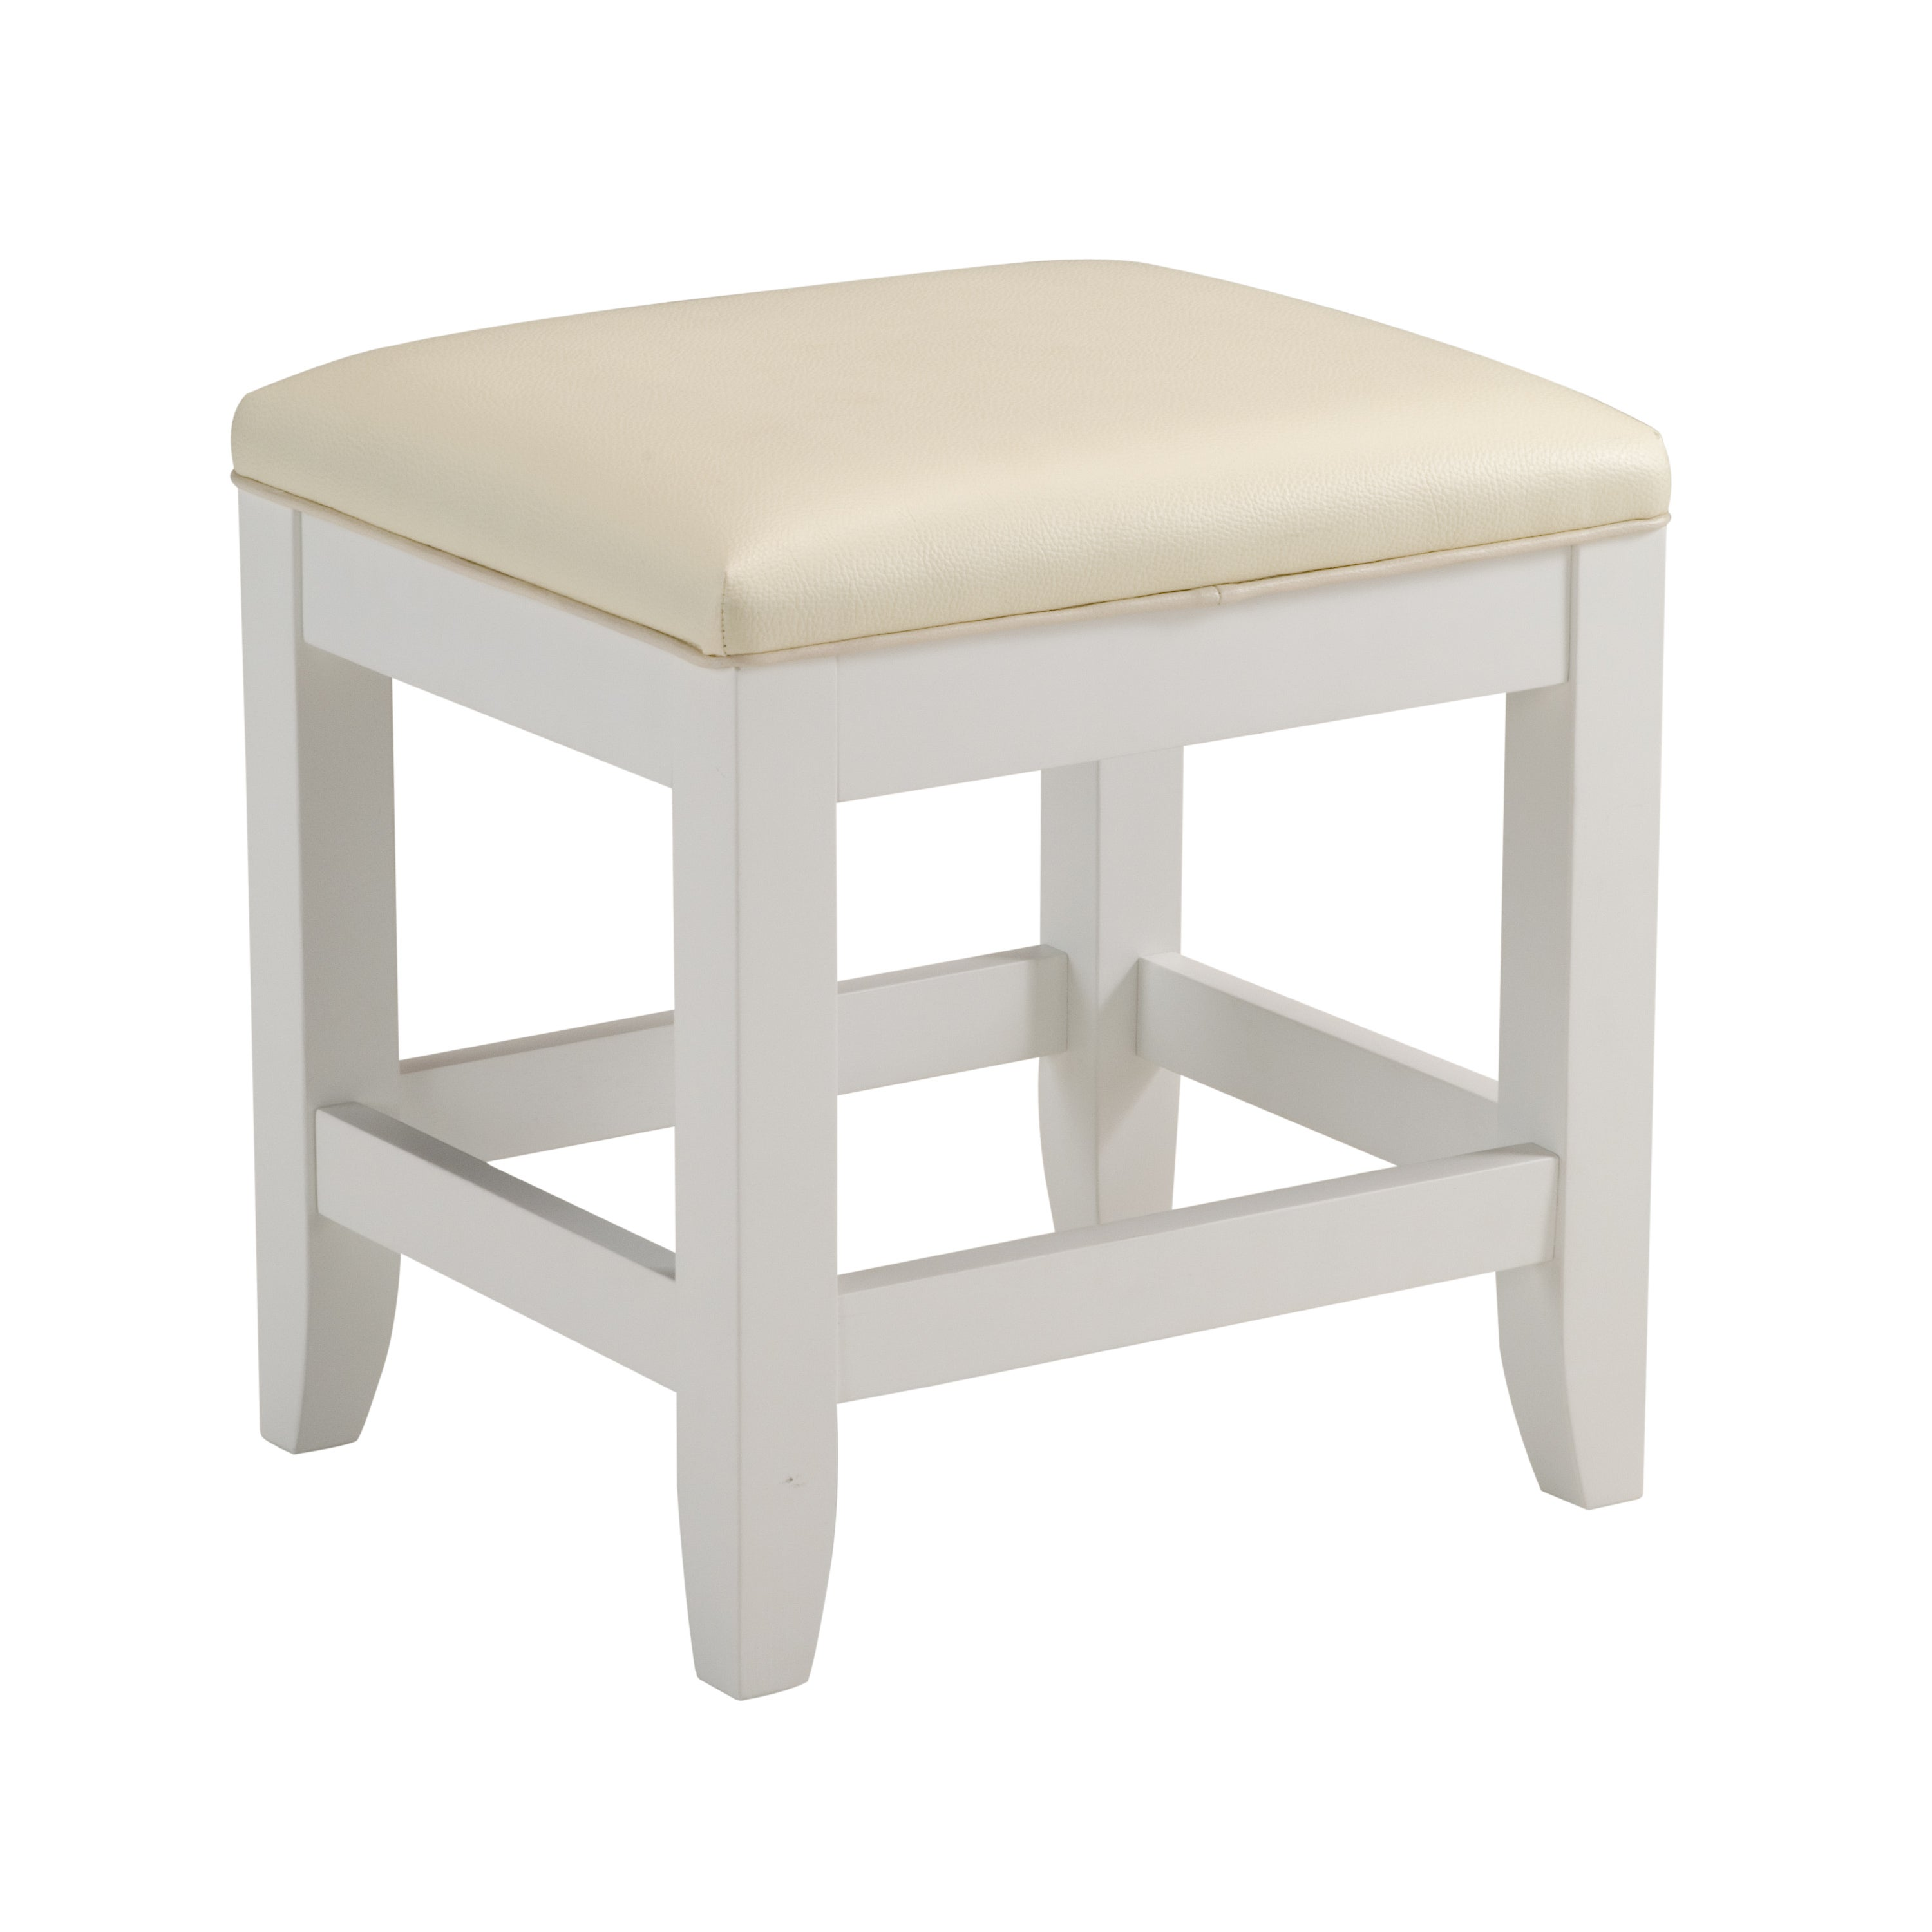 Shop Naples White Vanity Bench by Home Styles - 19\